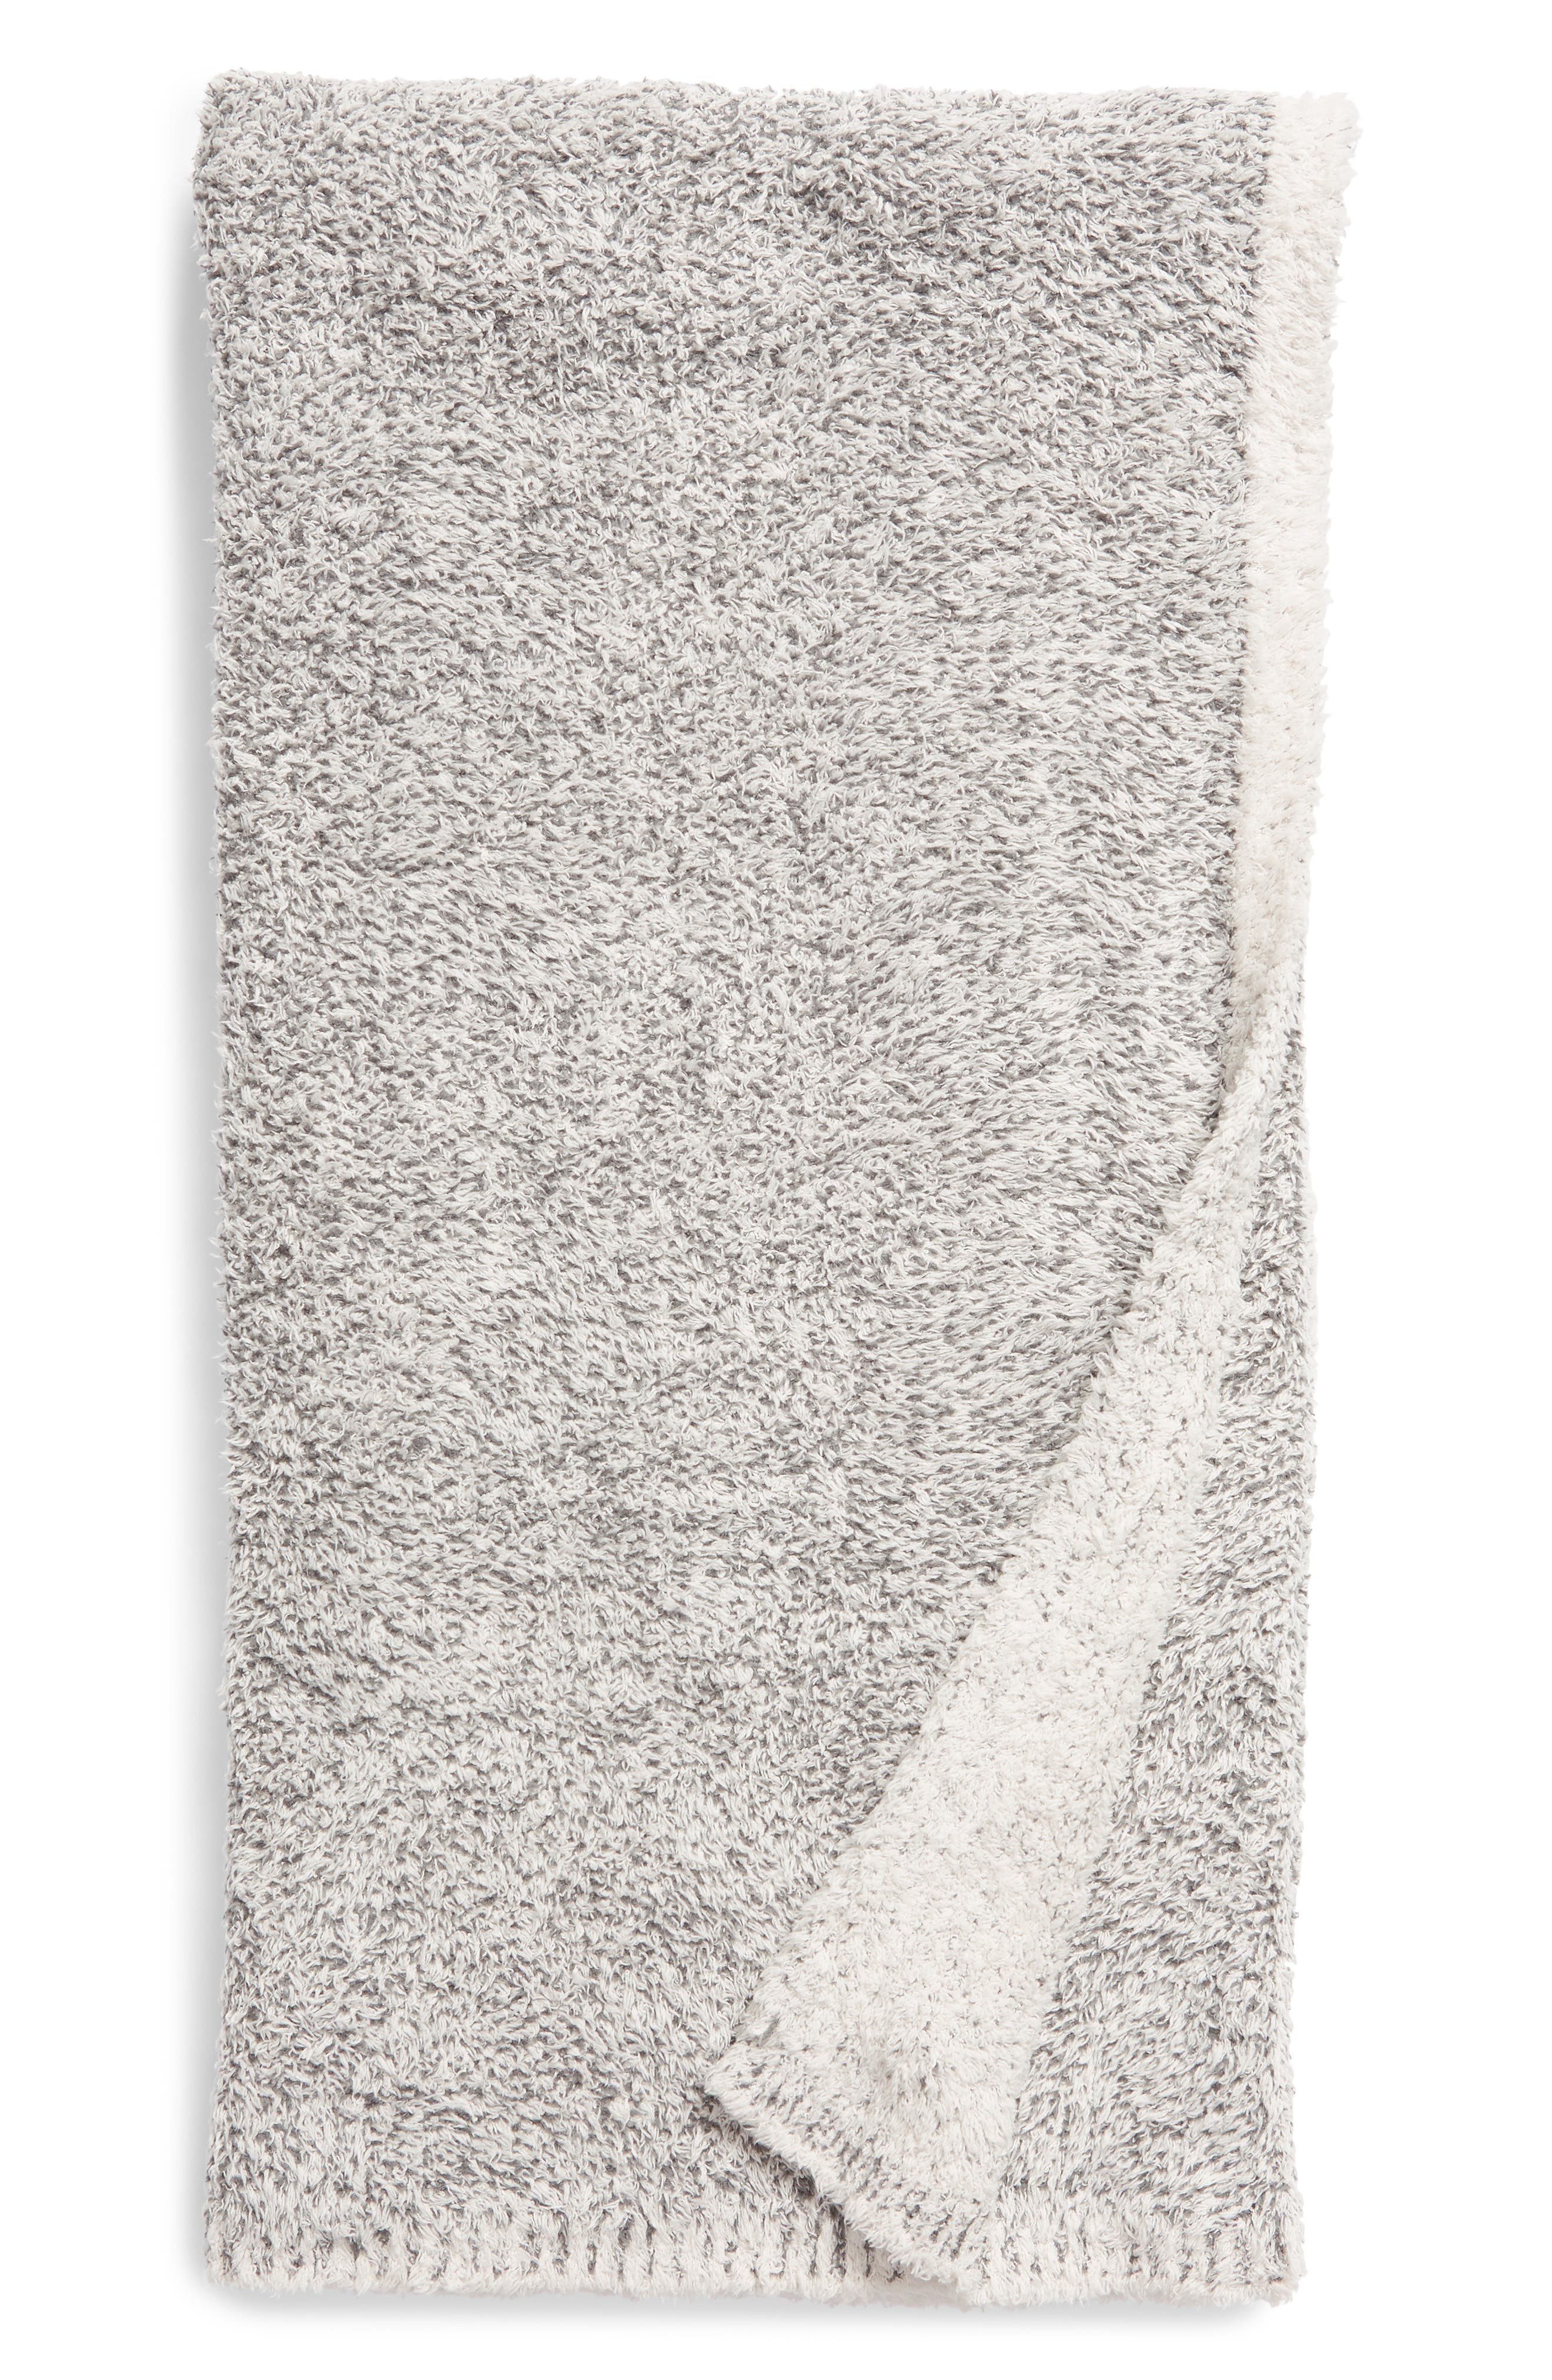 BAREFOOT DREAMS<SUP>®</SUP> CozyChic<sup>™</sup> Reversible Tweed Throw, Main, color, ALMOND/ GRAPHITE